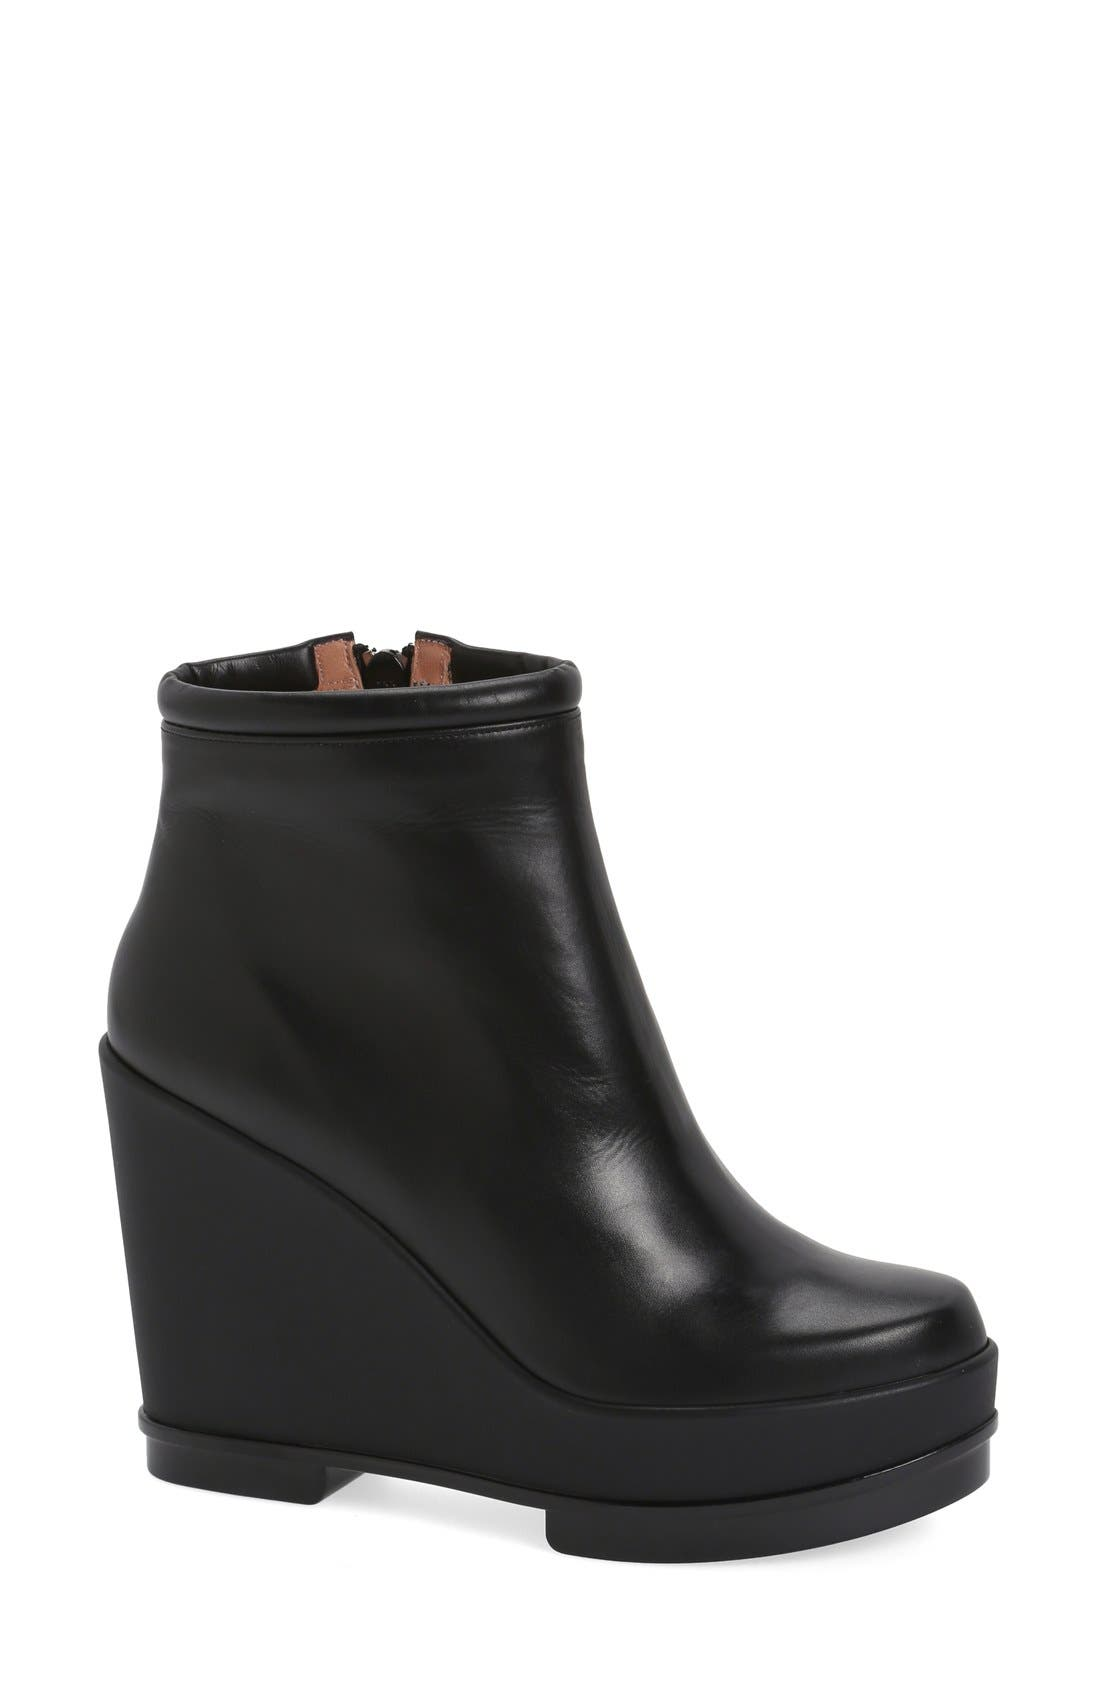 Alternate Image 1 Selected - Robert Clergerie 'Sarlah' Ankle Boot